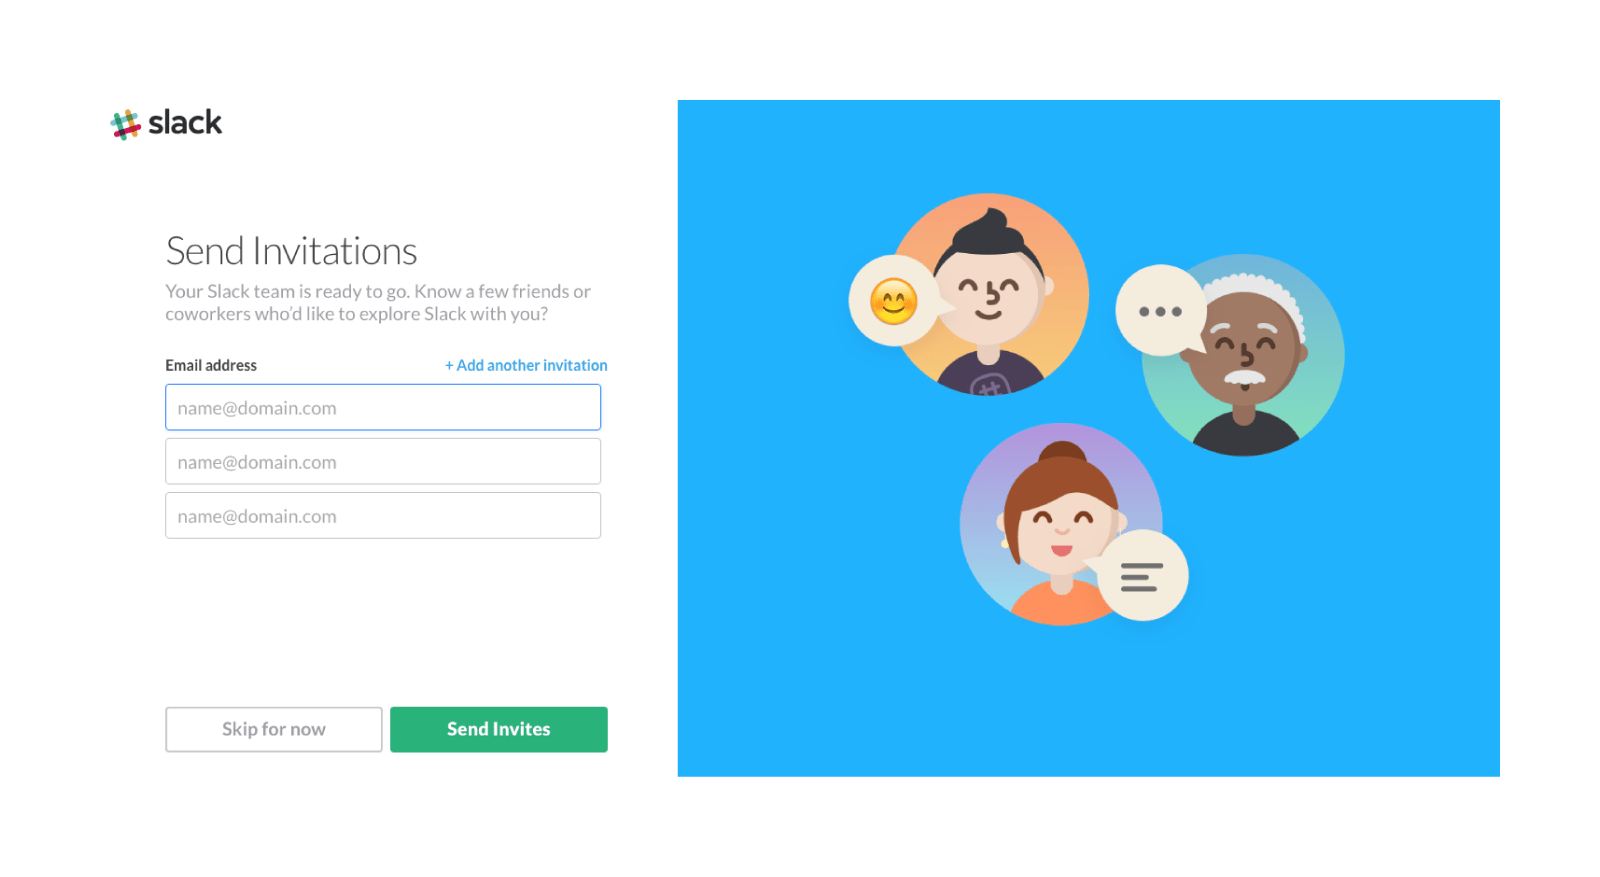 Slack website onboarding invitations for teammates